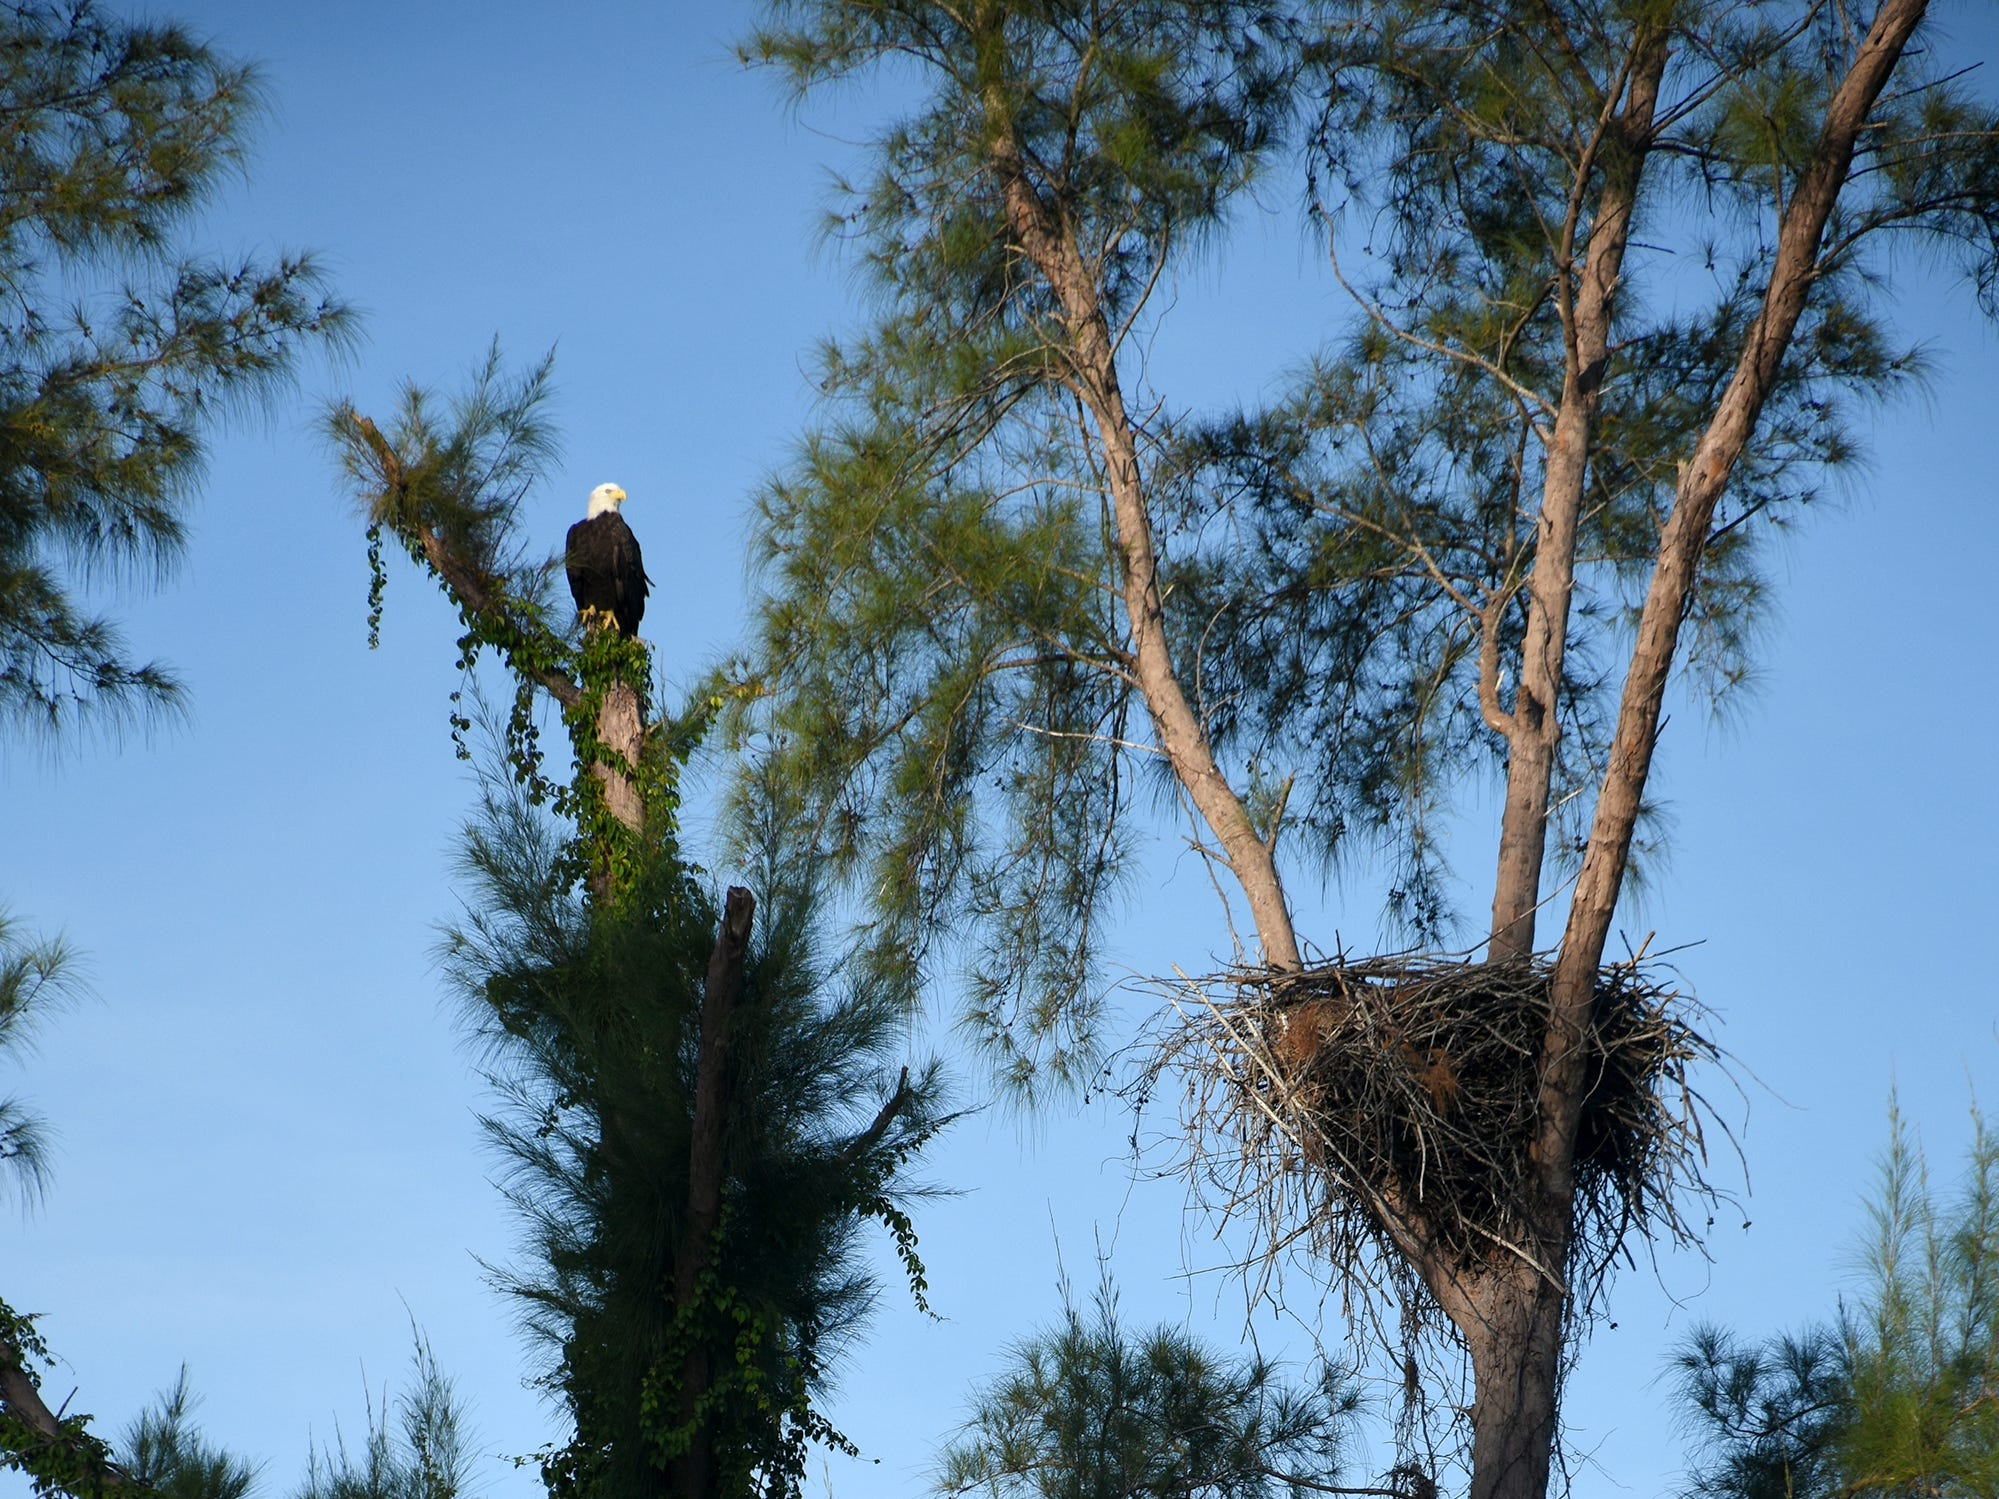 An eagle waits by the nest along Tigertail Court for its mate to return. The Eagle Cam at the Marco Island Nature Preserve and Bird Sanctuary is live, just in time to watch a pair of eagles renovating the treetop nest.